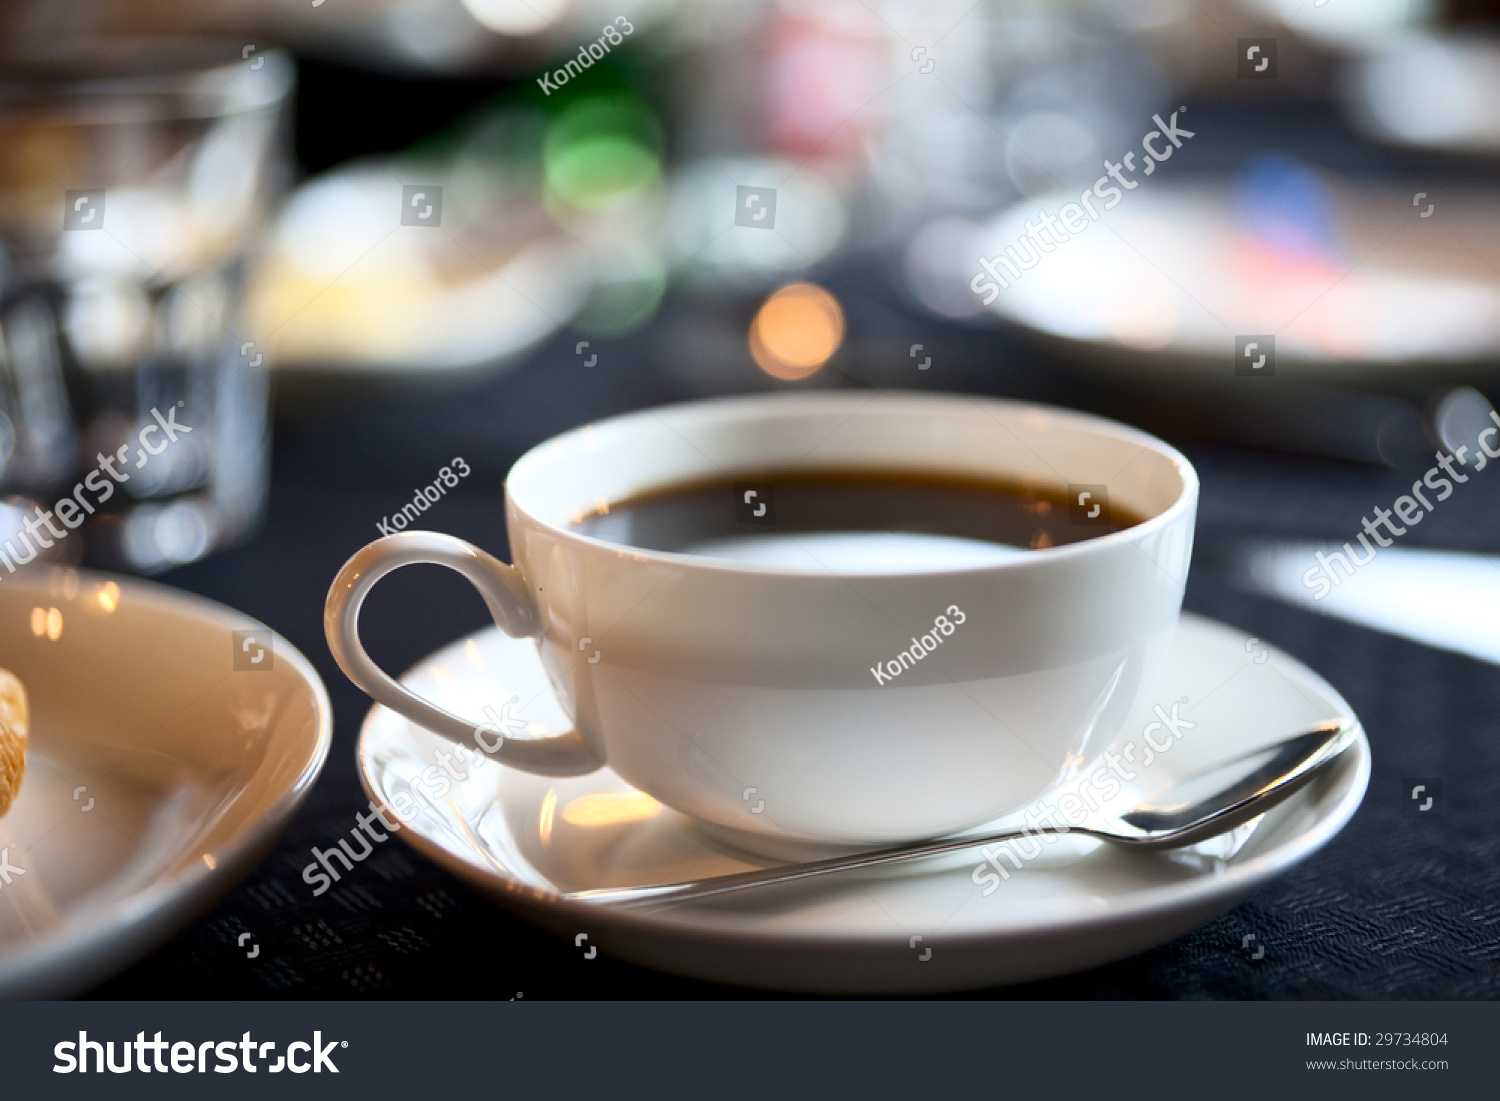 Americano Coffee English Cup Of Americano Coffee Shallow Focus Stock Photo